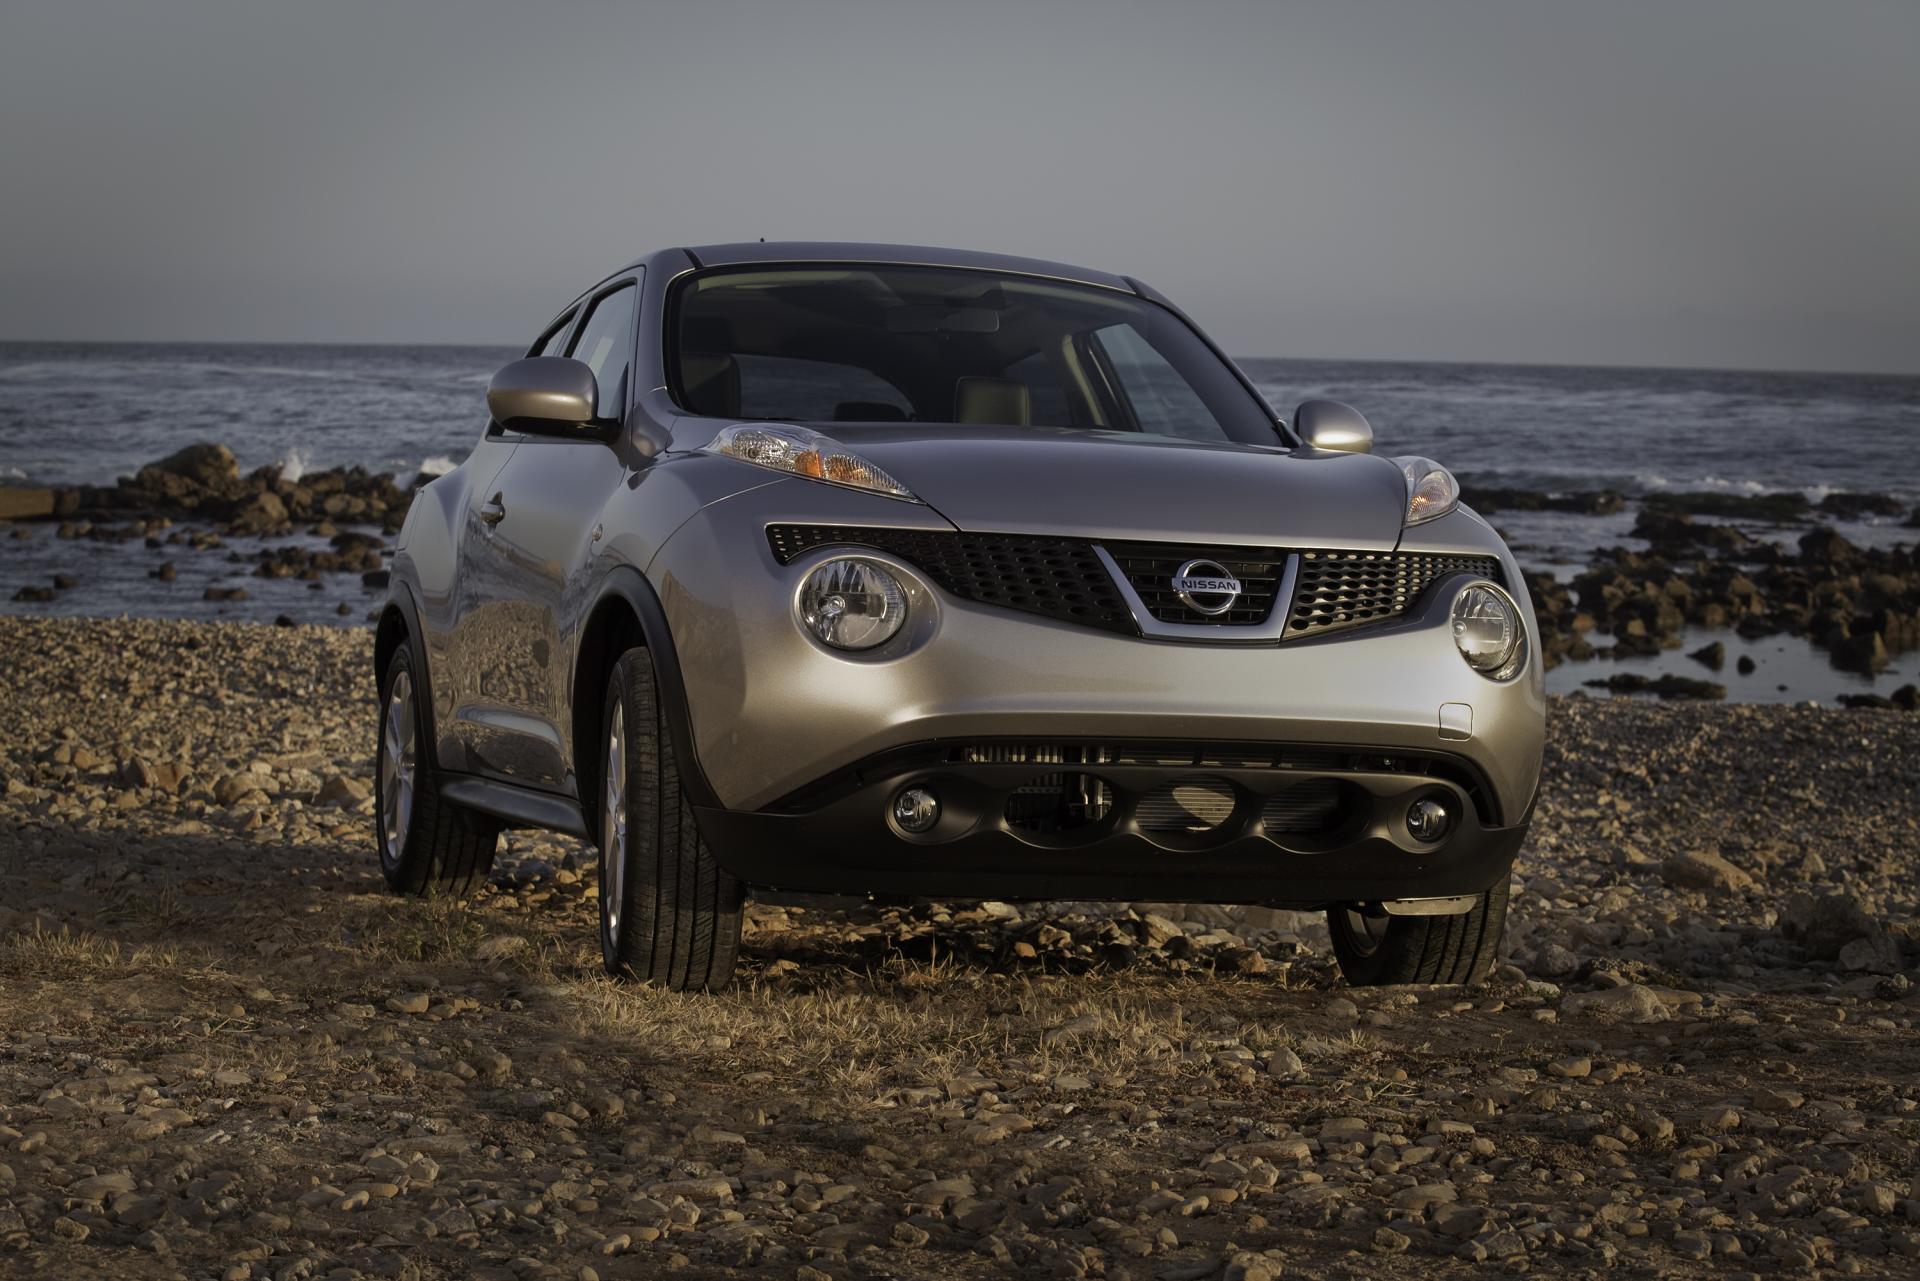 2014 nissan juke technical specifications and data engine. Black Bedroom Furniture Sets. Home Design Ideas